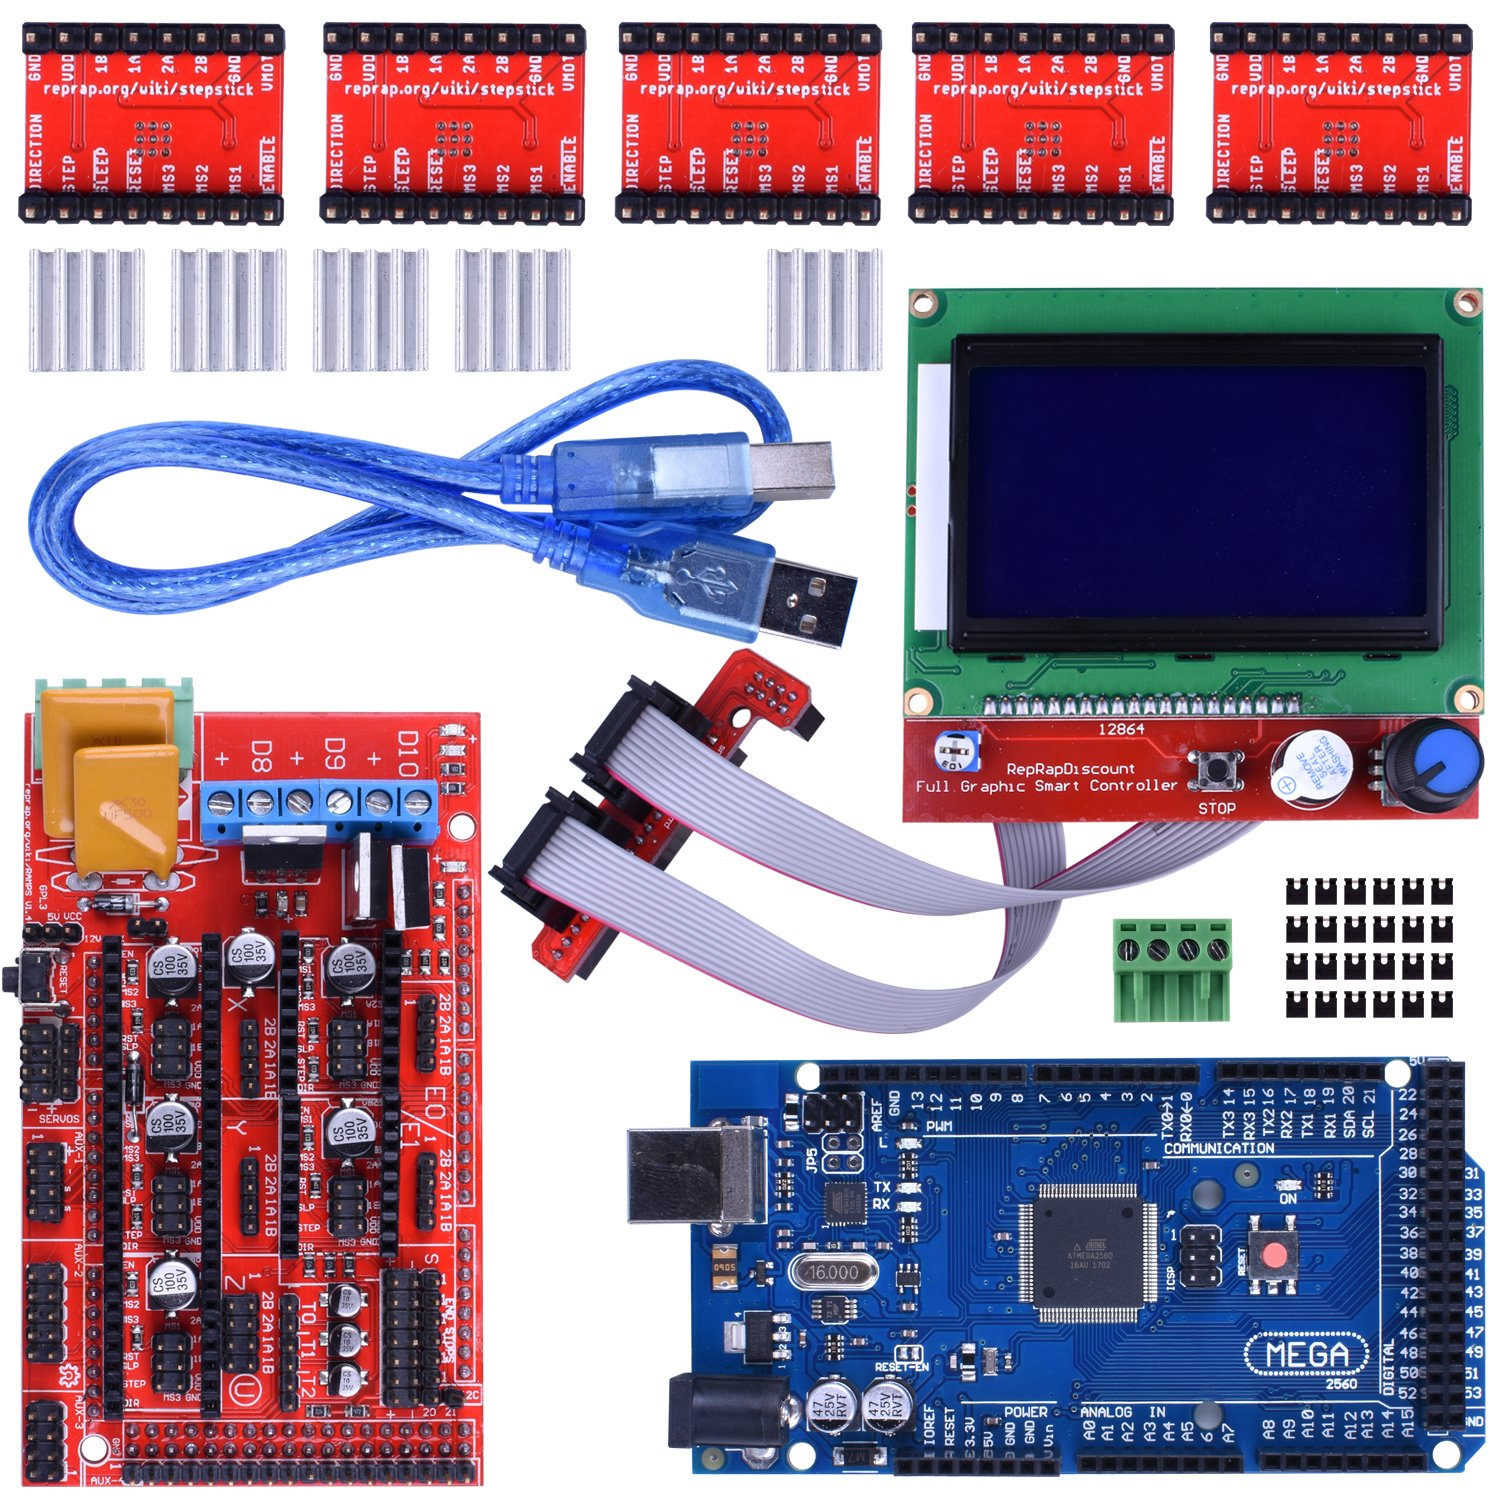 Cheap Mosfet Motor Driver Schematic Find Arduino 110v Power Controller Circuit Get Quotations 3d Printer Kit For Mega 2560 Uno R3 Starter Kits Ramps 14 With